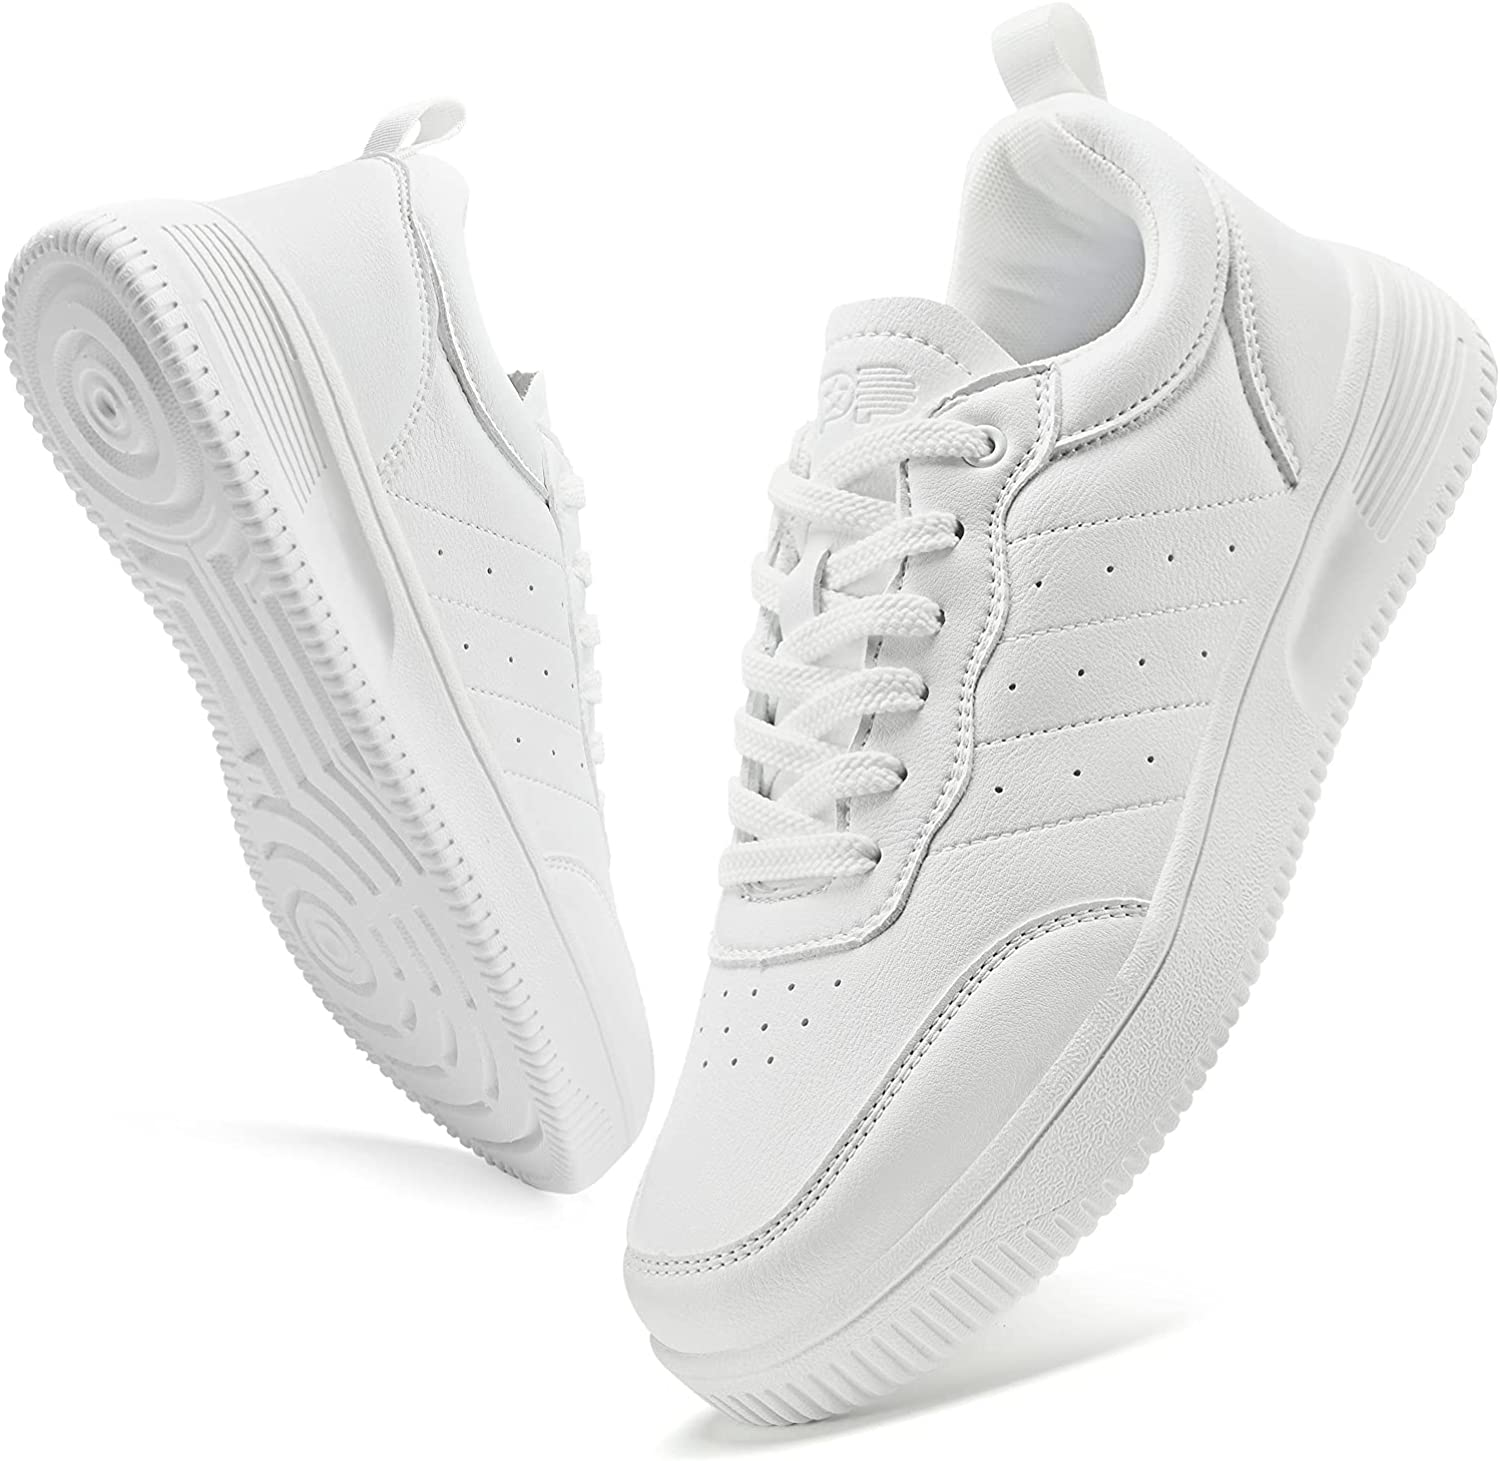 KPP Men's Sneakers Walking Shoes Max 74% OFF Sale item - Lightweight Sho Classic White